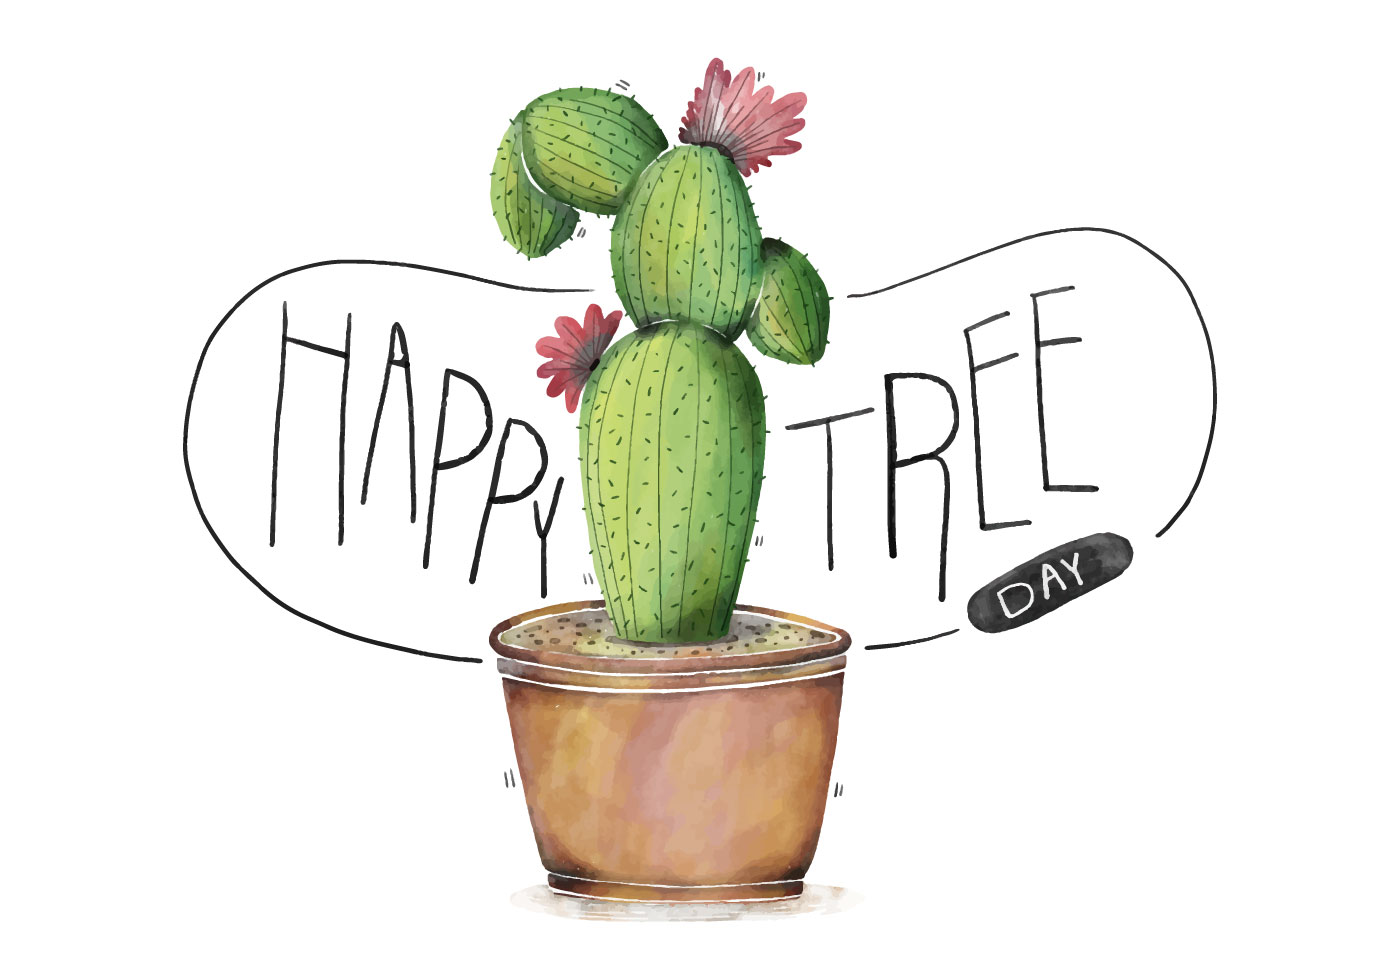 Cute Very Colorful Cactus Illustration With Flower